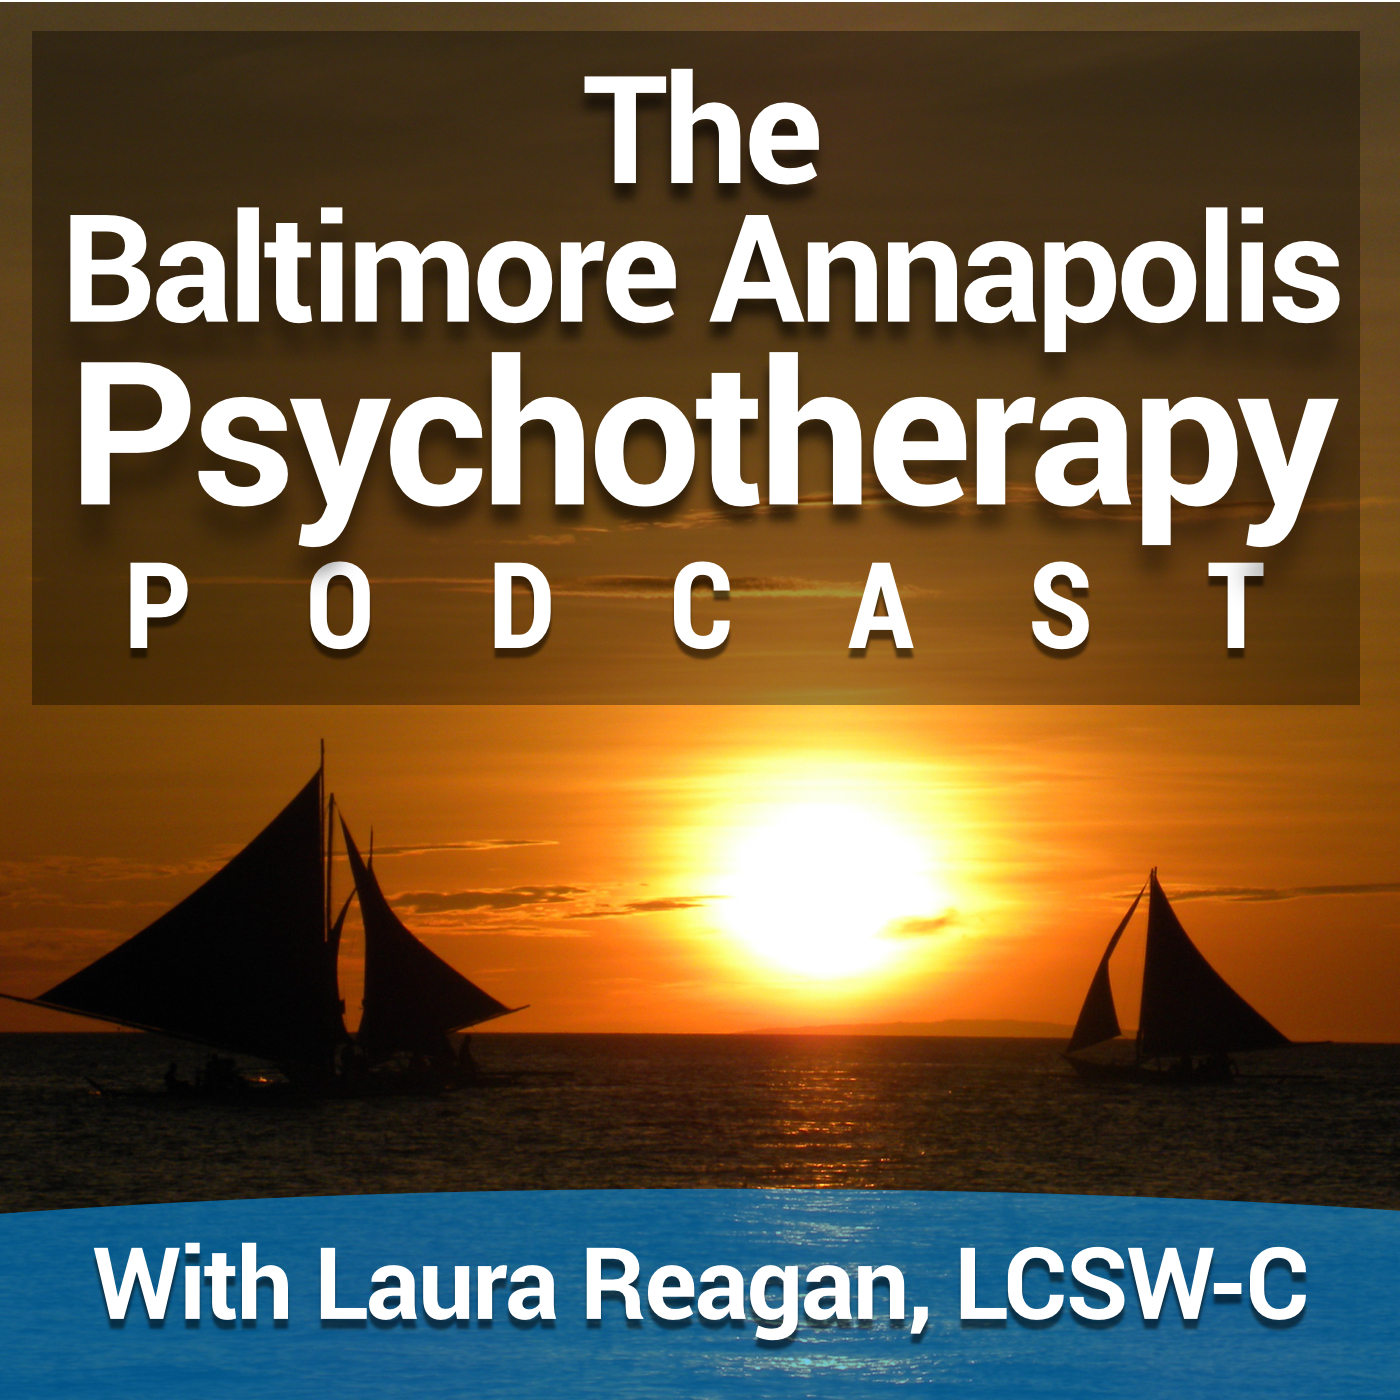 The Baltimore Annapolis Psychotherapy Podcast